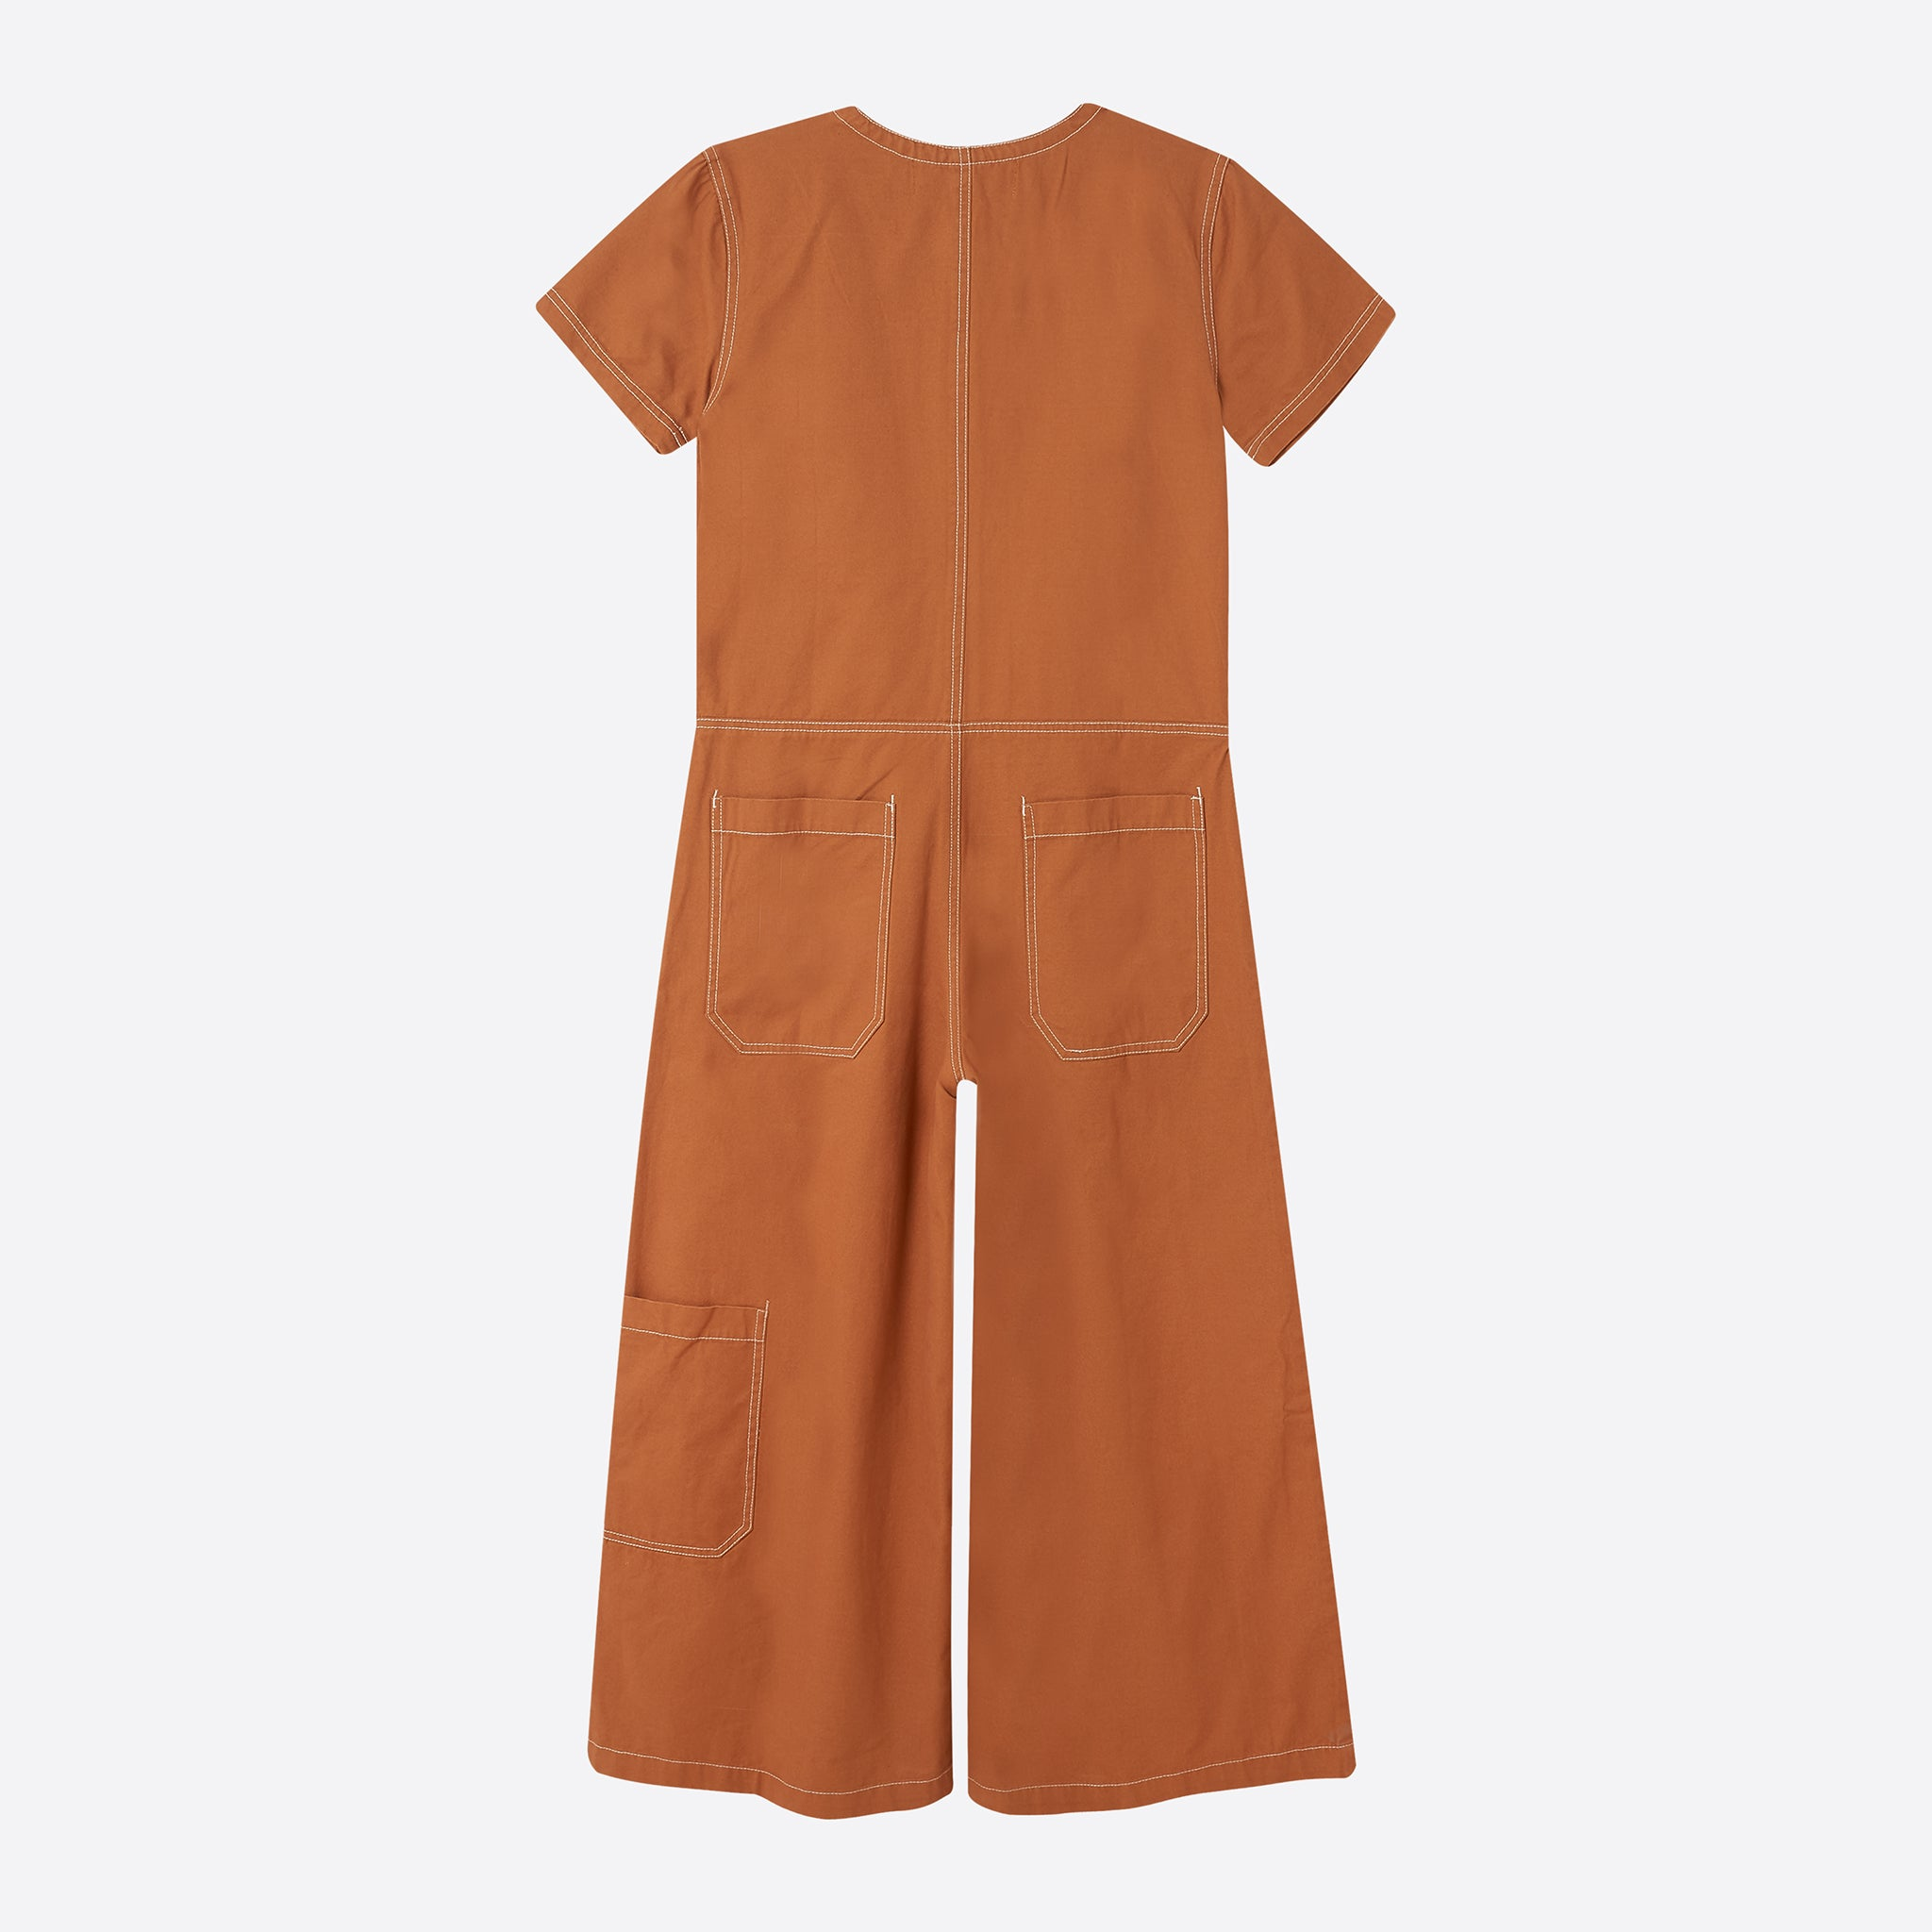 LF Markey Felix Boilersuit in Terracotta